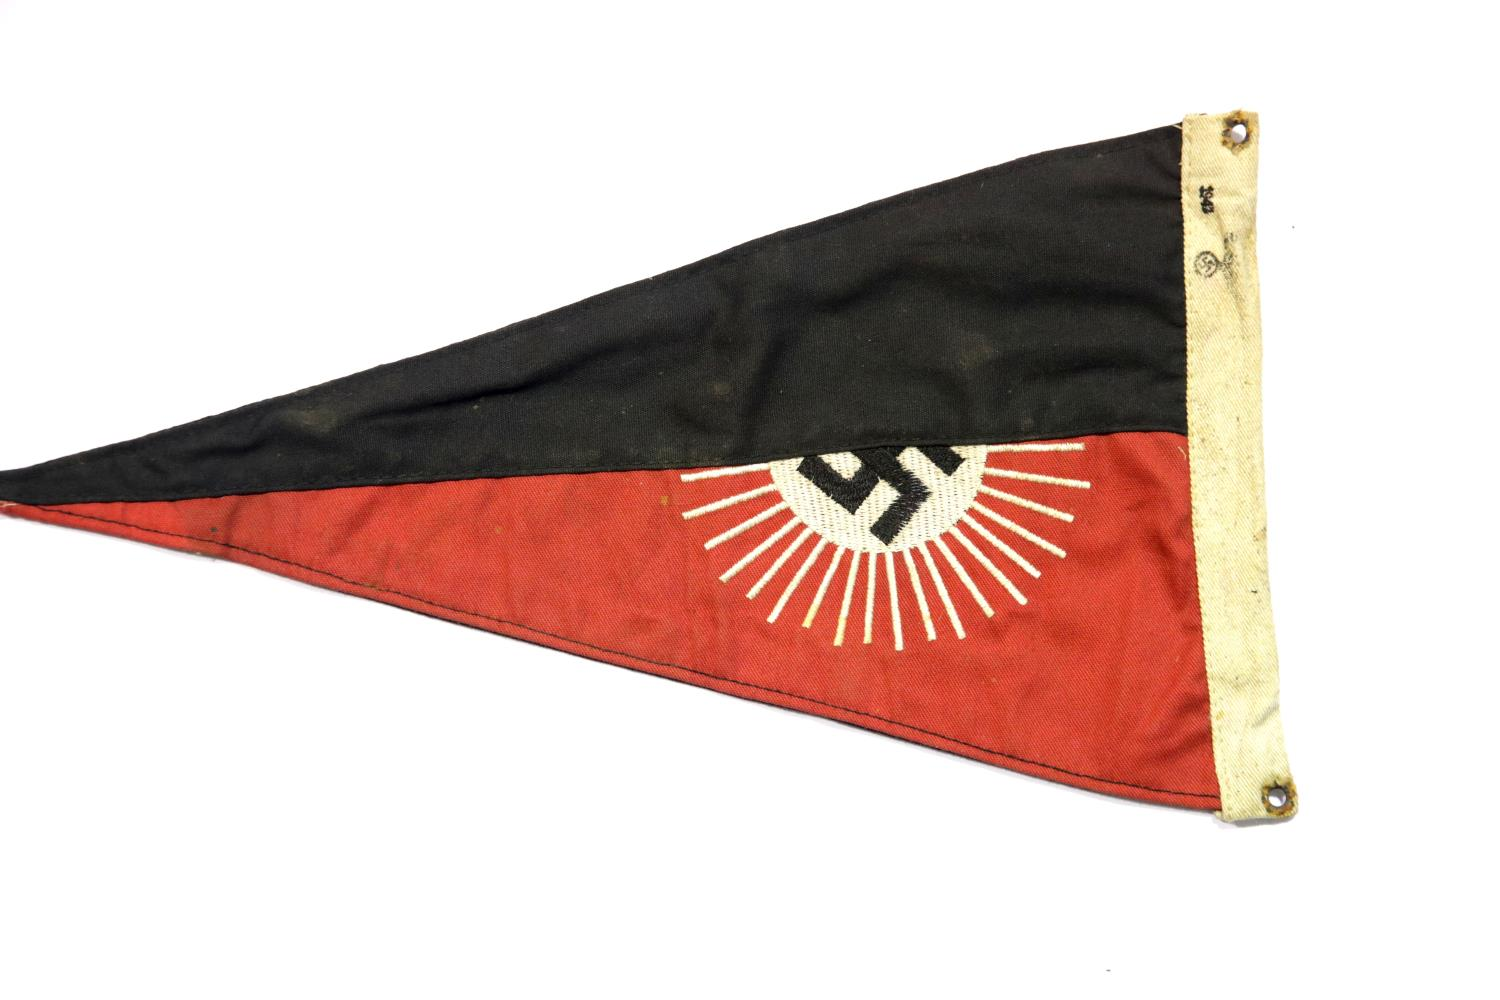 Lot 3016 - German Third Reich type Deutsches Youth pennant, L: 30 cm. P&P Group 1 (£14+VAT for the first lot